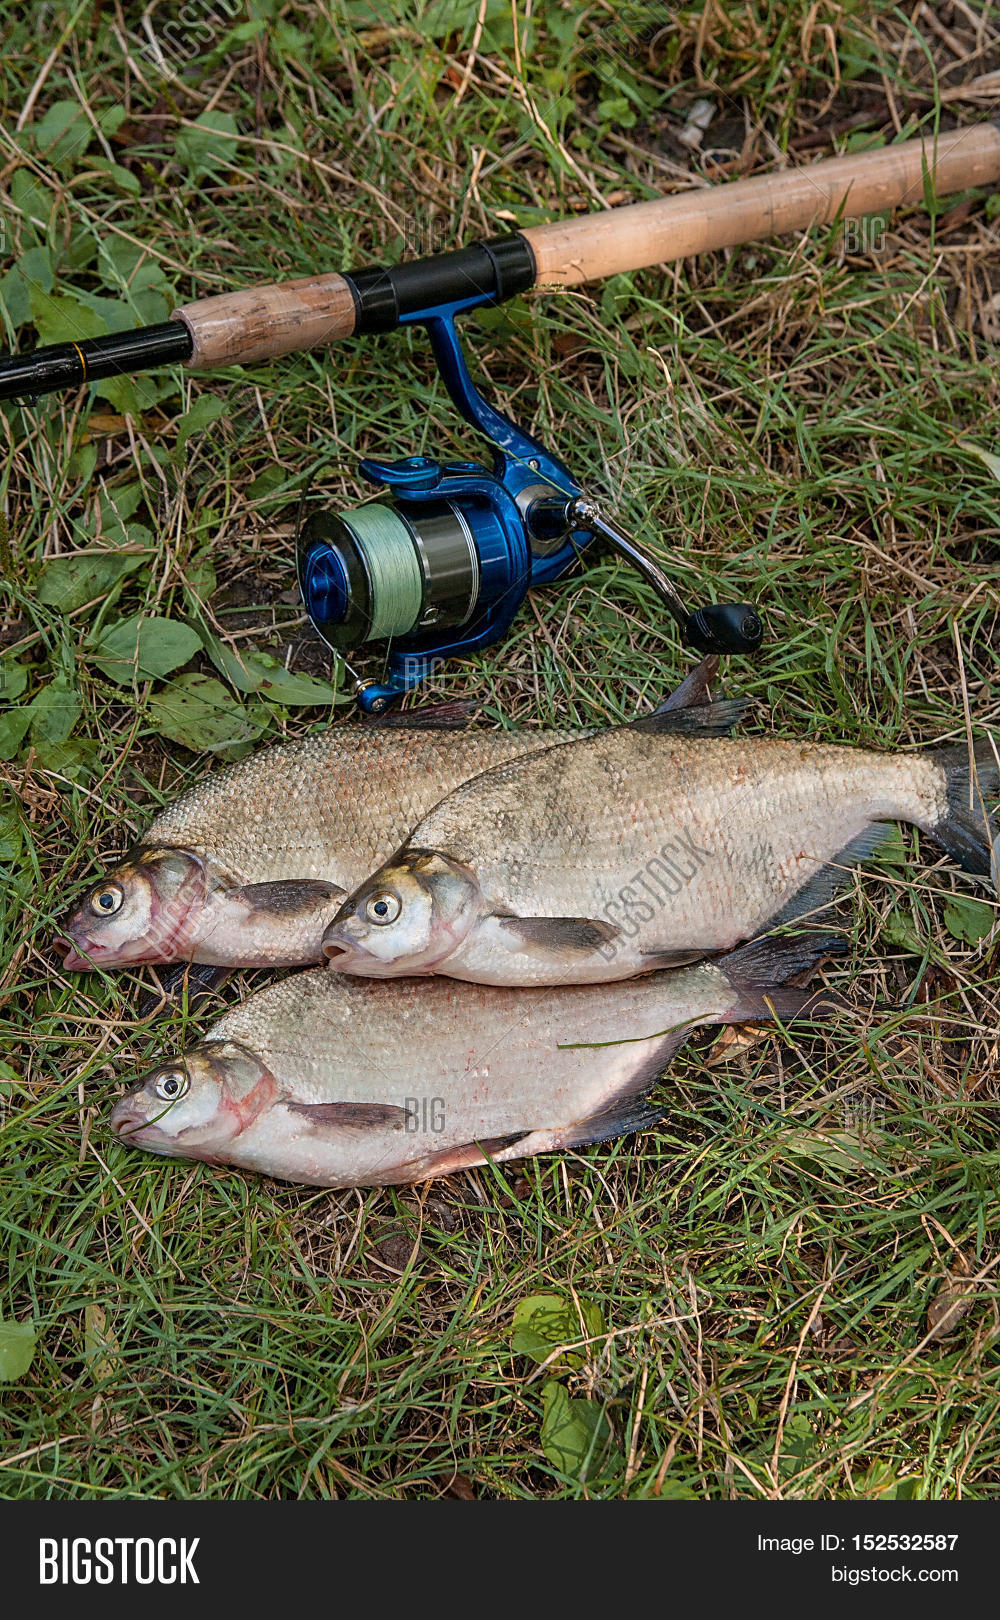 Freshwater fish bream - Several Common Bream Fish On The Natural Background Catching Freshwater Fish And Fishing Rod With